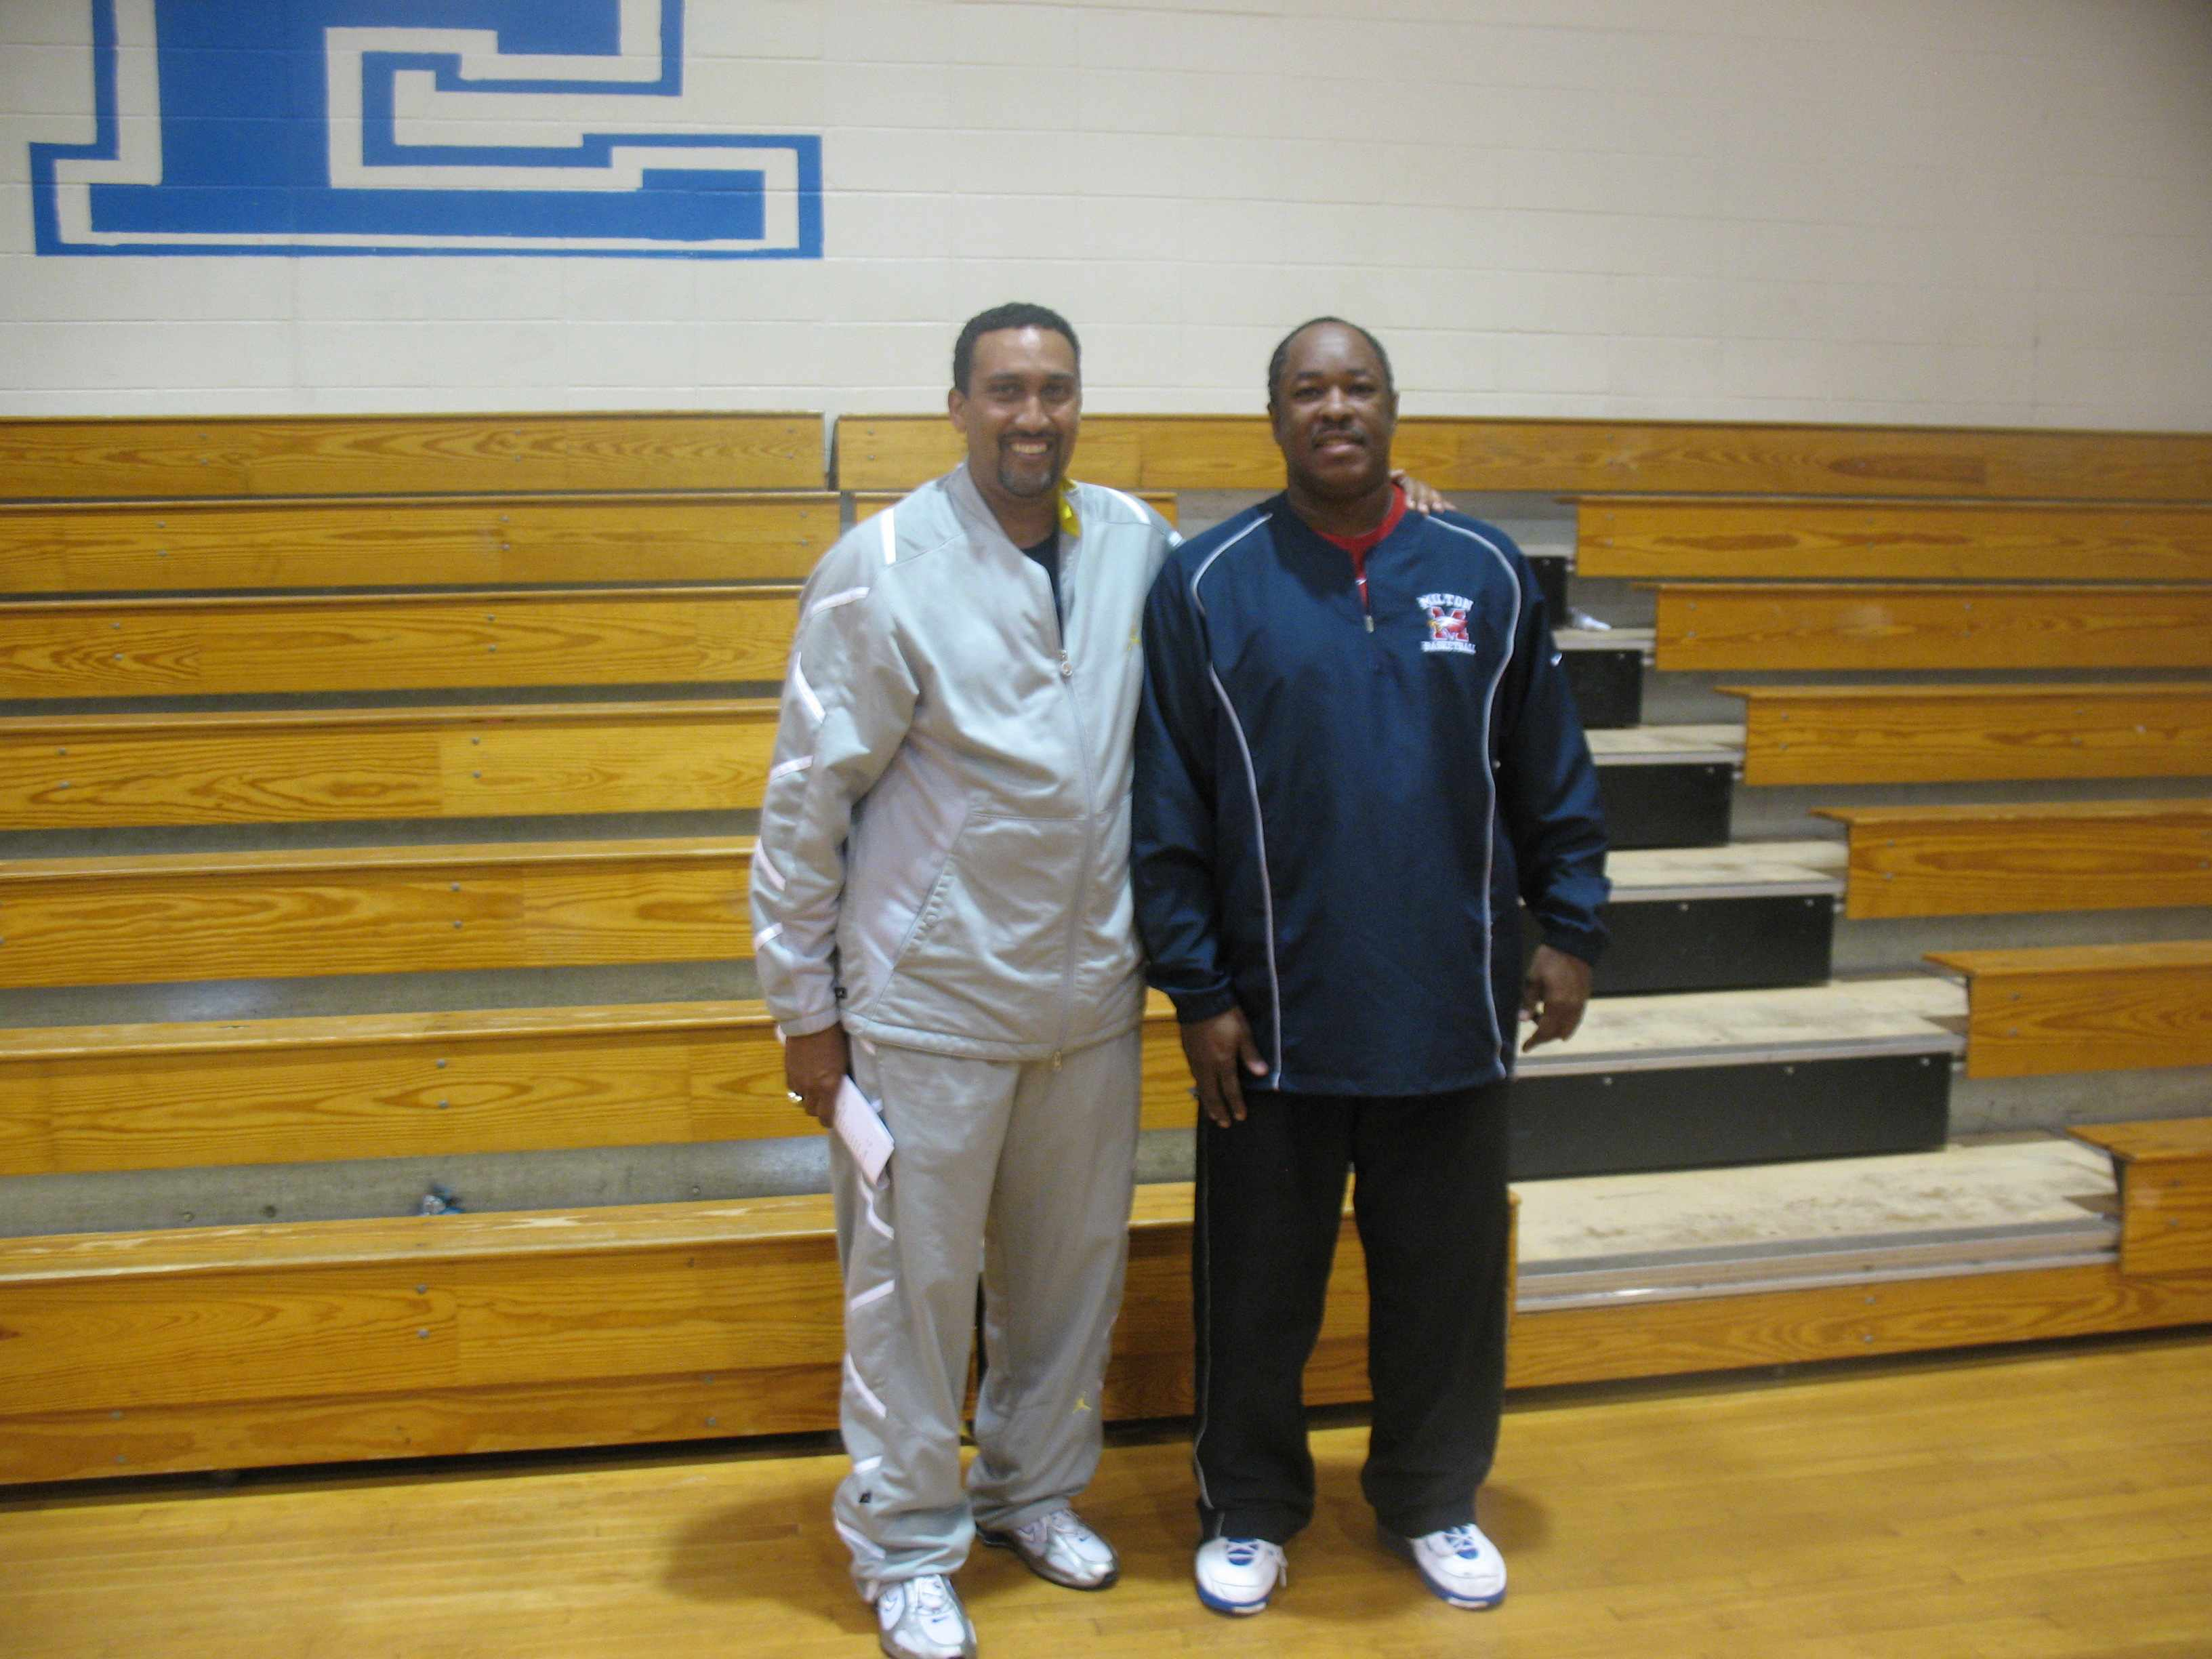 Coach E and Coach D